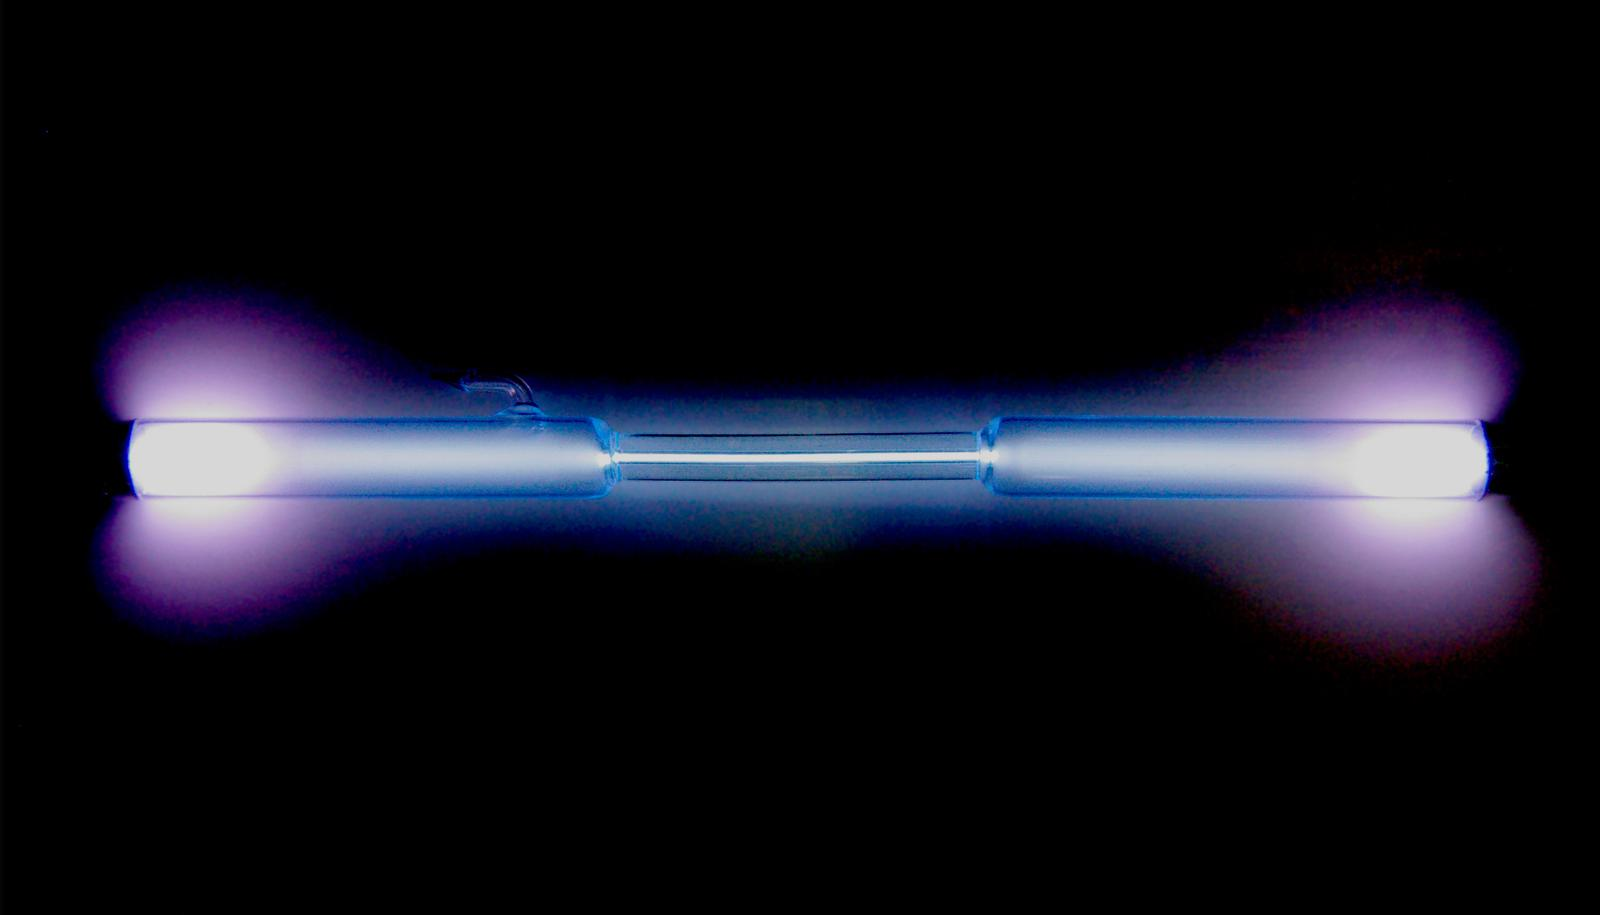 tube of xenon glows blue and purple on black